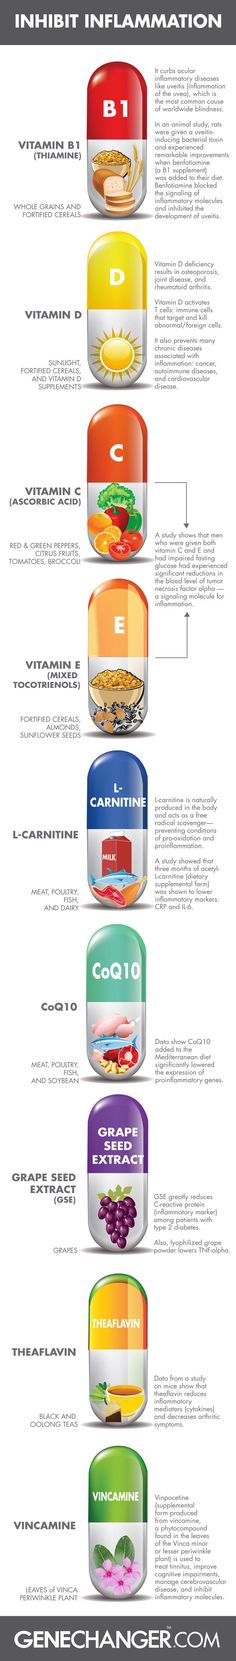 Inhibit-Inflamation-info-graphic